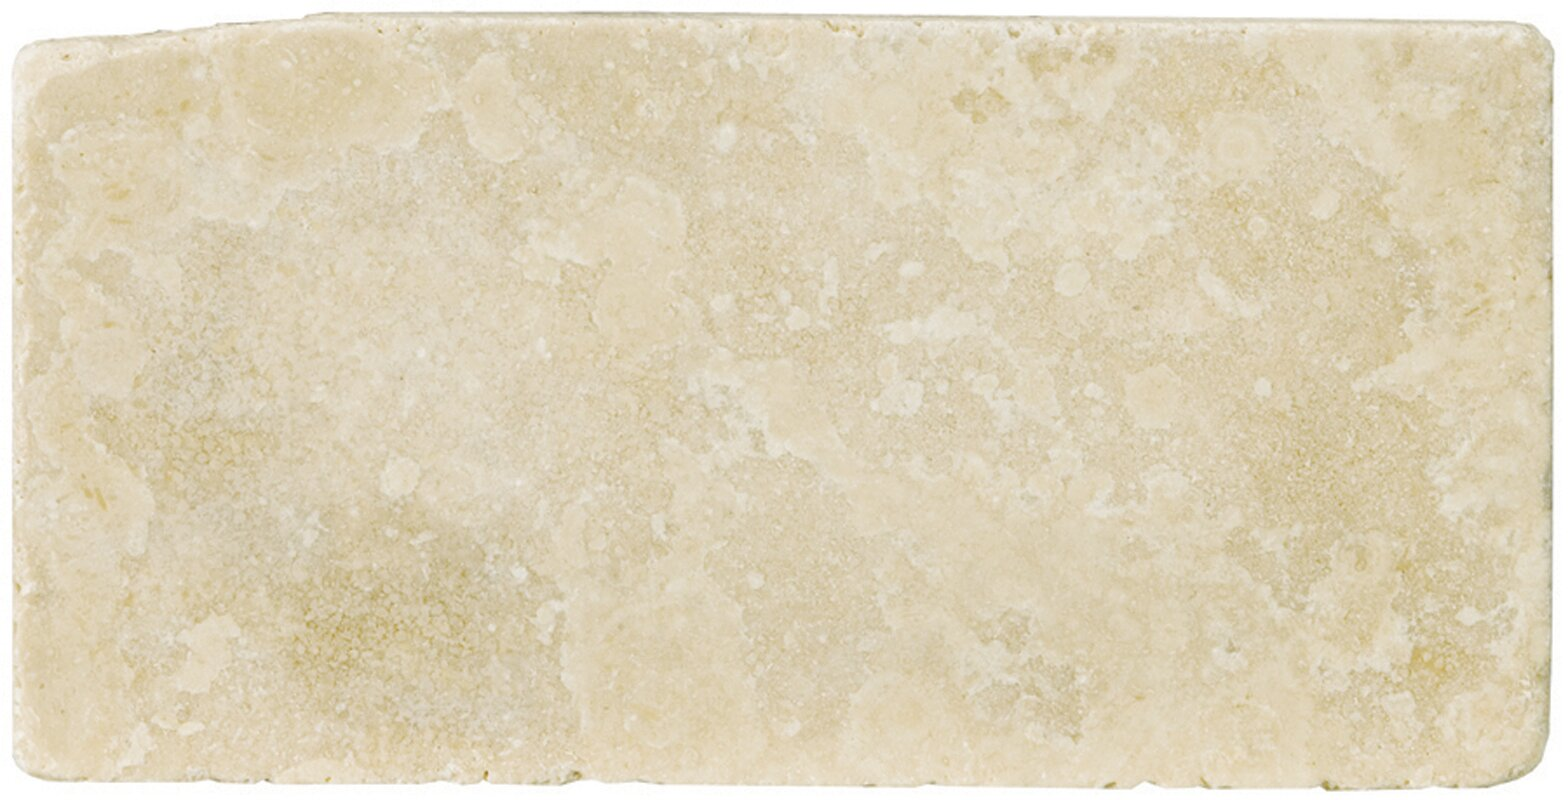 Travertine 8 X 16 Field Tile In Ancient Tumbled Beige